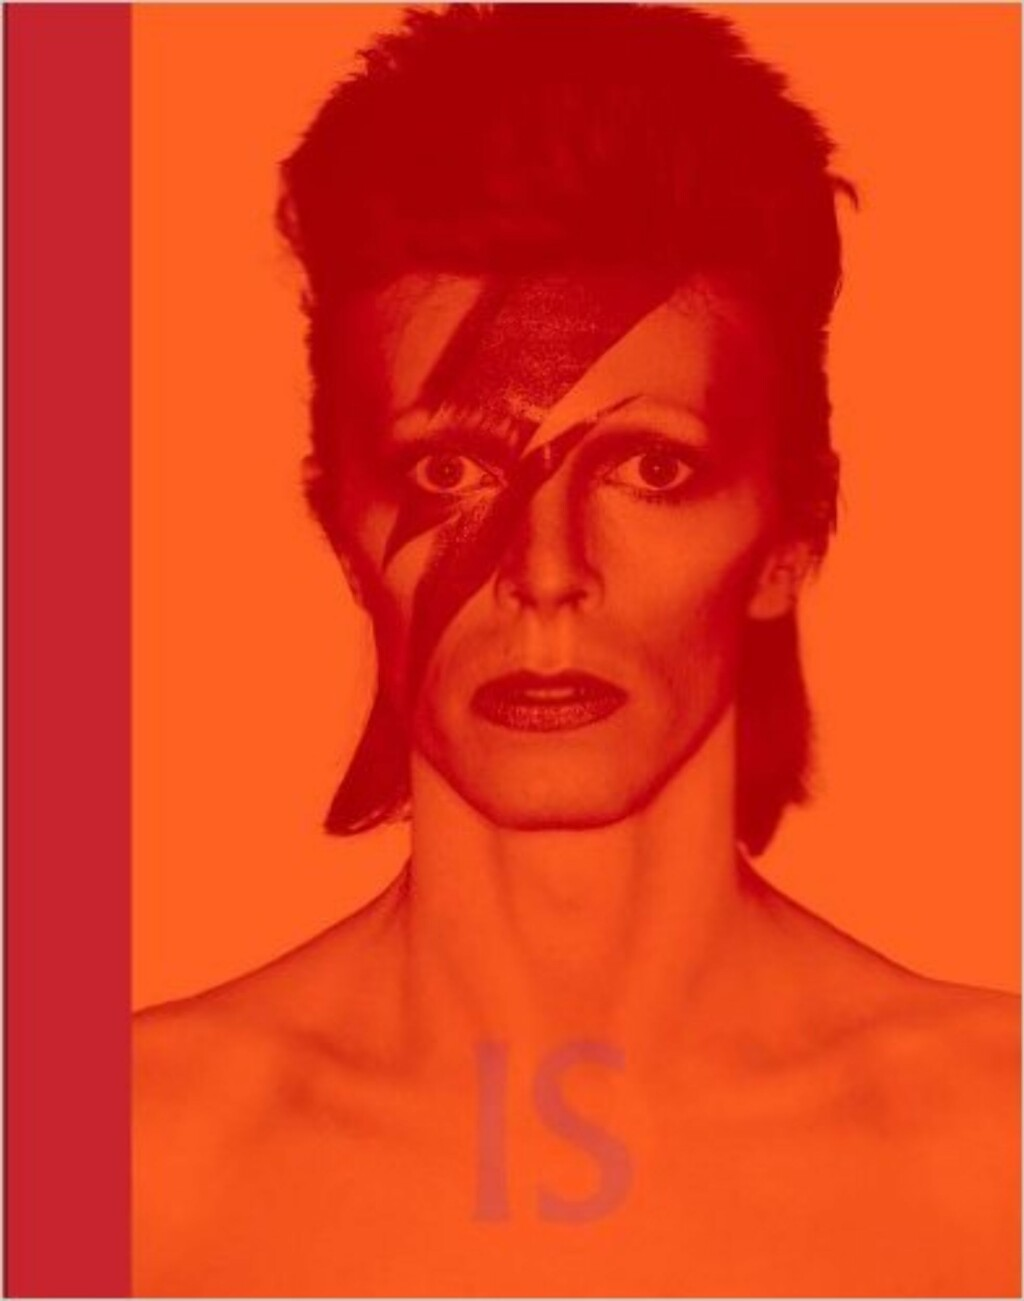 David Bowie via Amazon.com, kr 330.